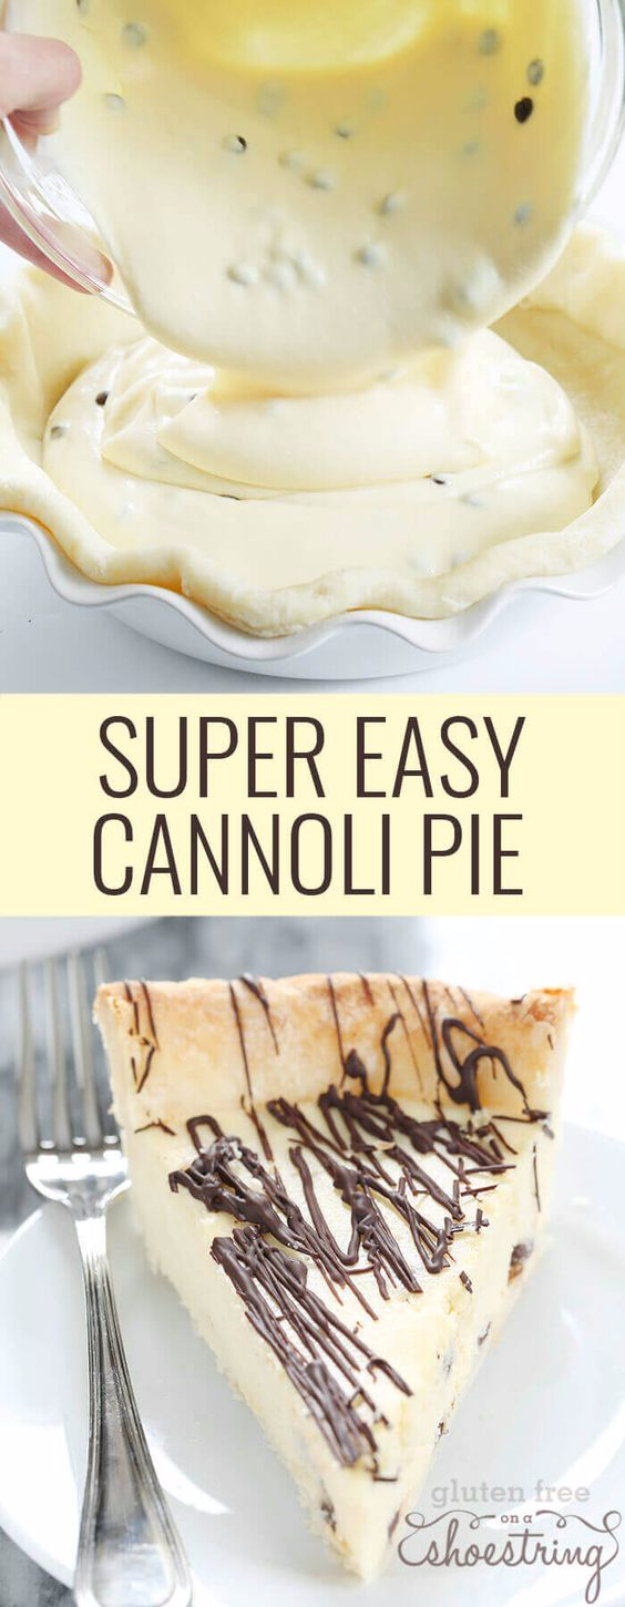 Best Pie Recipes - Super Easy Gluten Free Cannoli Pie - Easy Pie Recipes From Scratch for Pecan, Apple, Banana, Pumpkin, Fruit, Peach and Chocolate Pies. Yummy Graham Cracker Crusts and Homemade Meringue #recipes #dessert